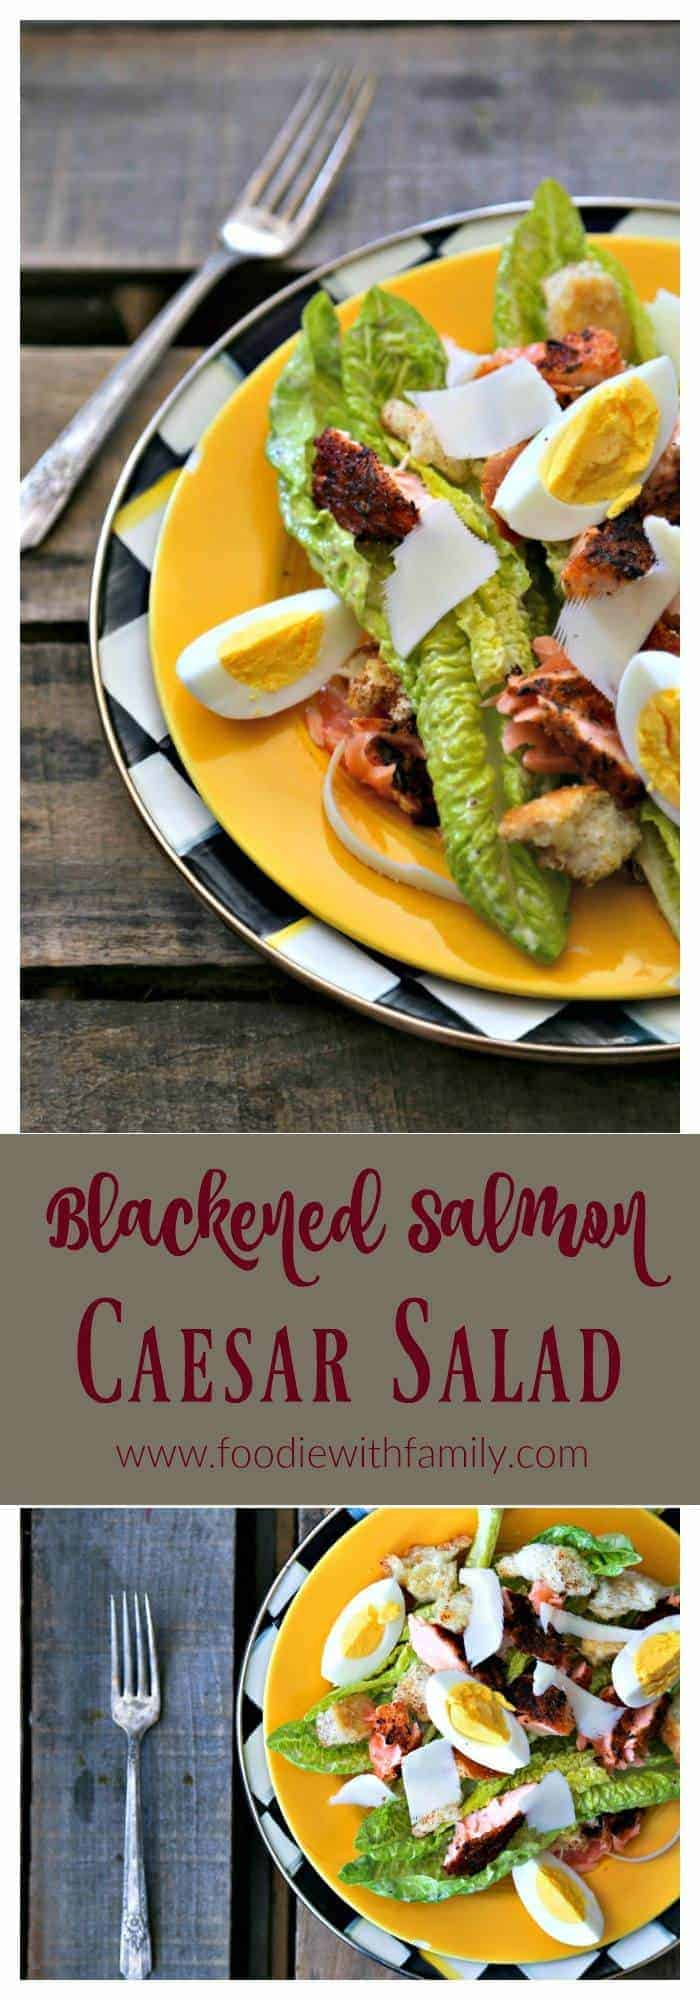 Simple, fresh, and filling main dish salad for spring! Blackened Salmon Caesar Salad with torn croutons, hard boiled egg, homemade dressing, and flaked blackened salmon gives the traditional Caesar salad a flavourful facelift!